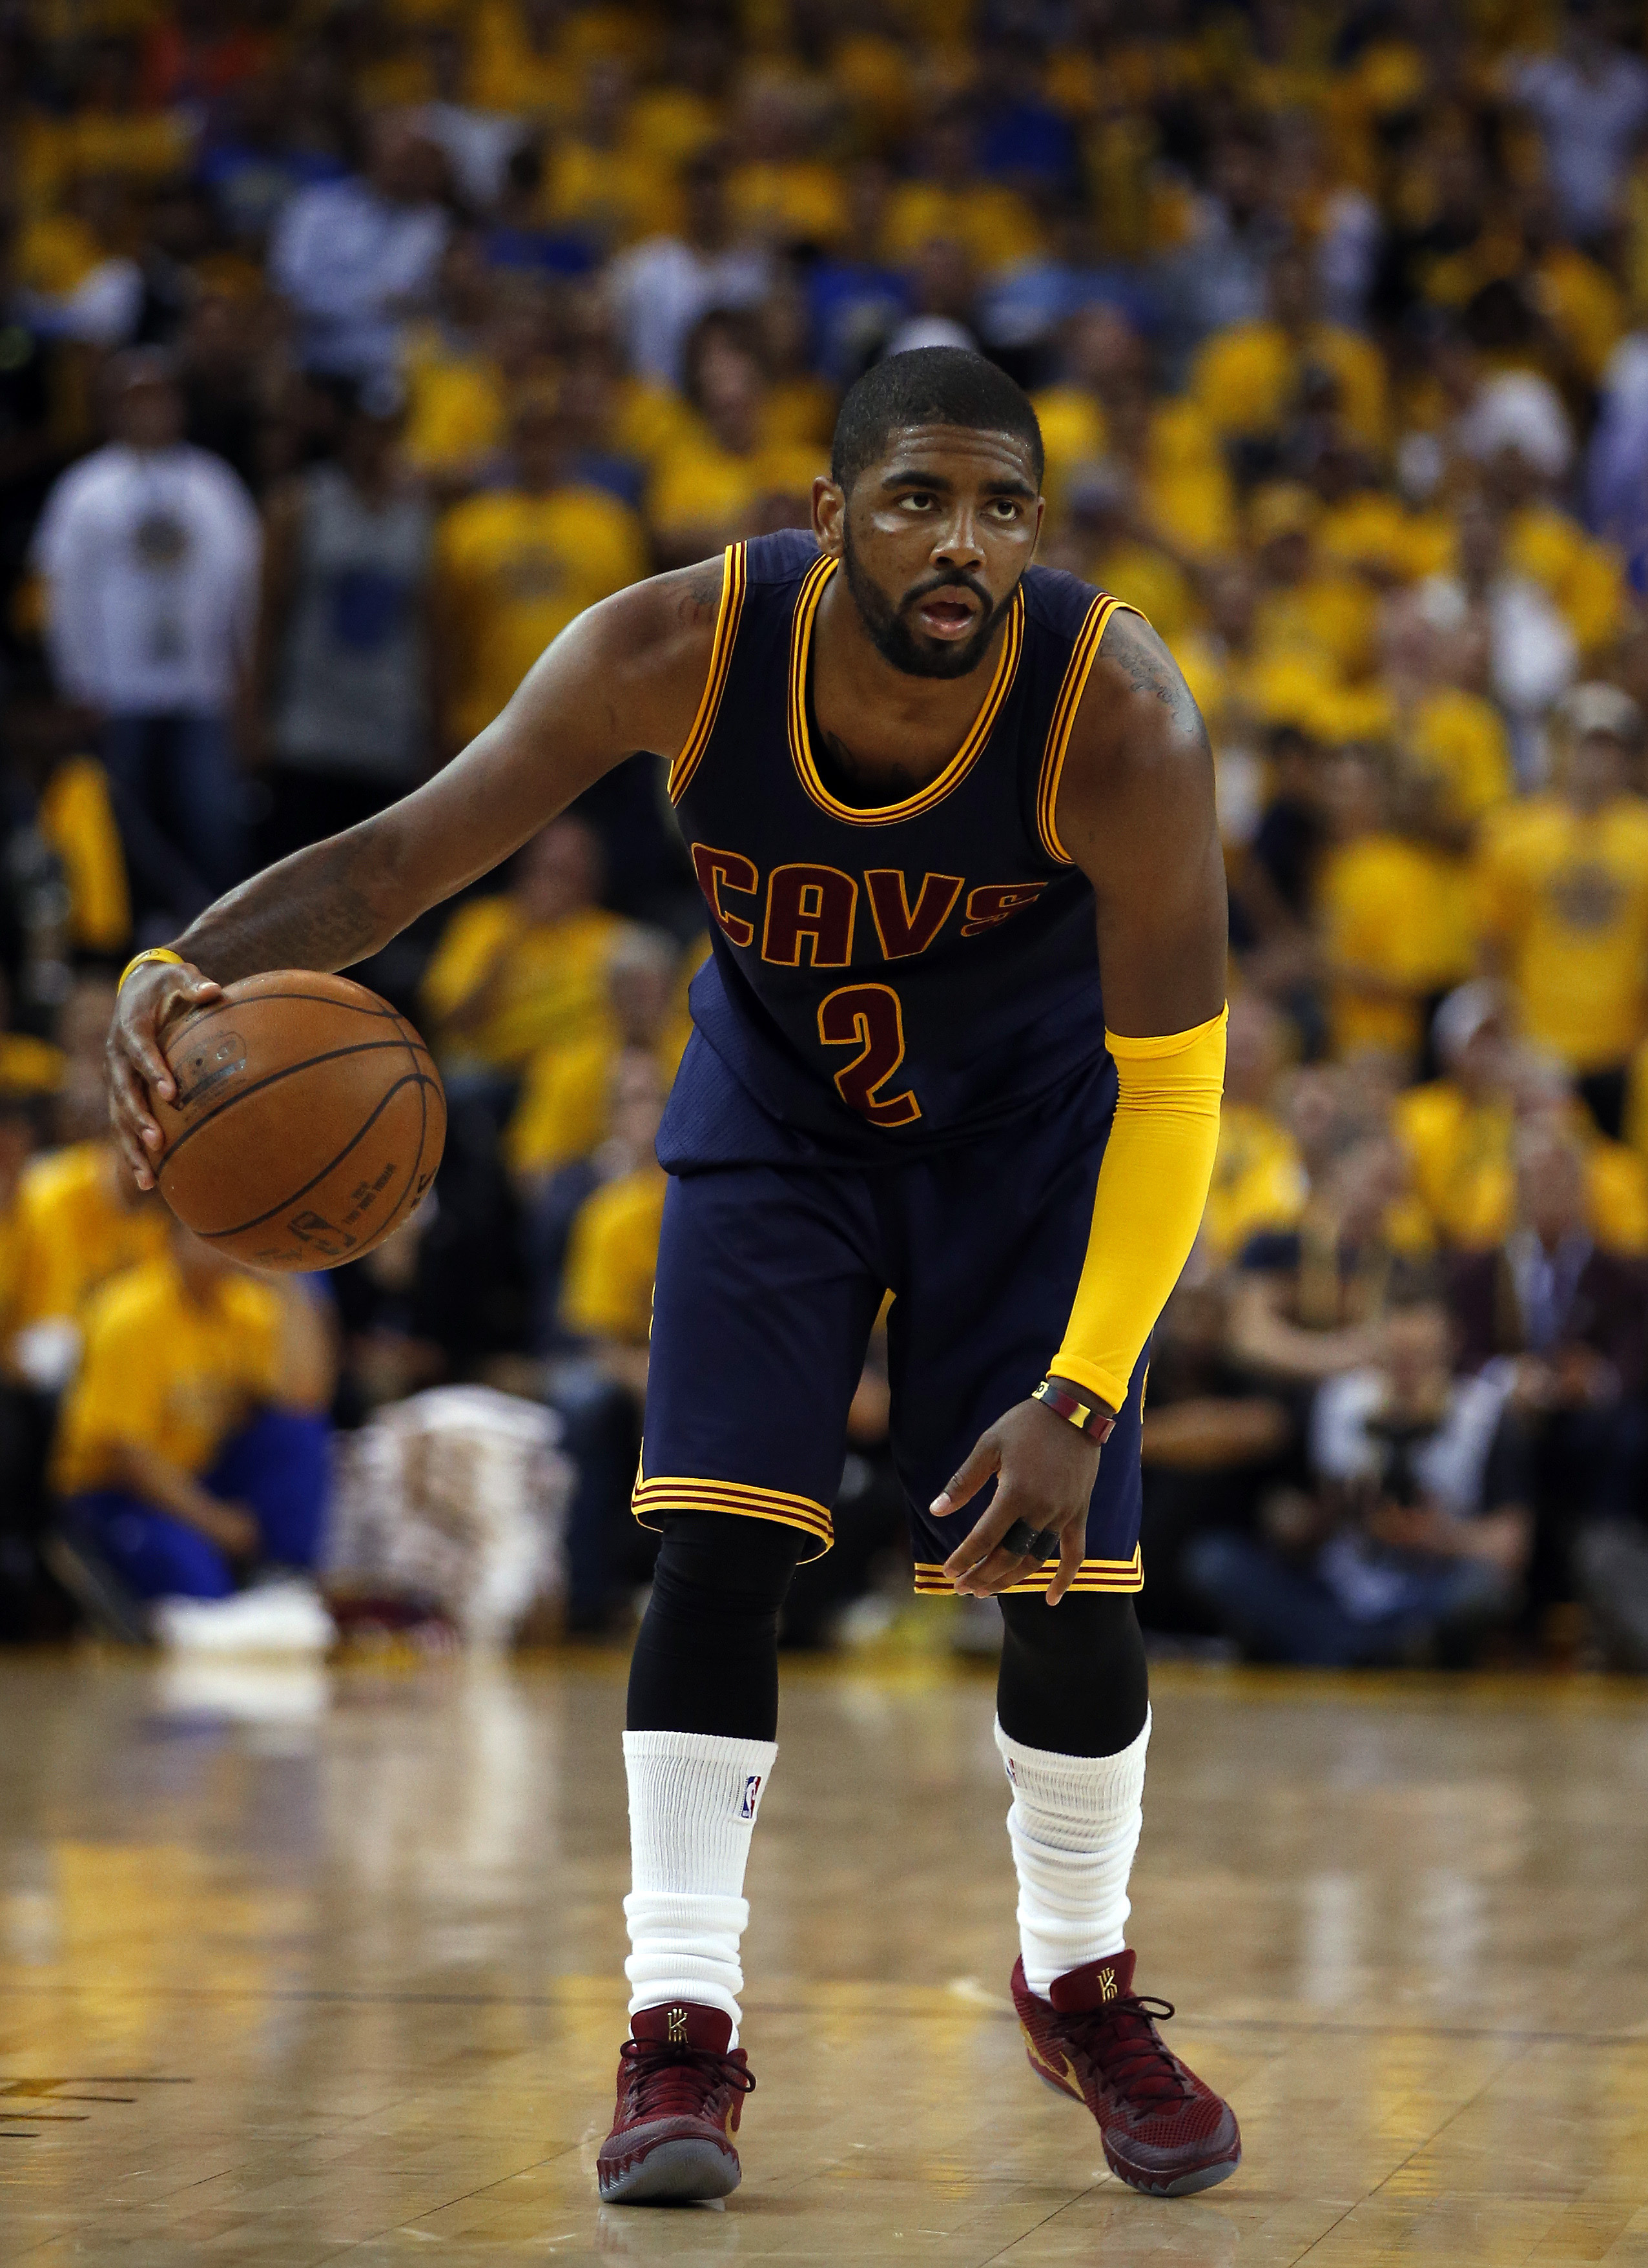 OAKLAND, CA - JUNE 04:  Kyrie Irving #2 of the Cleveland Cavaliers controls the ball against the Golden State Warriors during Game One of the 2015 NBA Finals at ORACLE Arena on June 4, 2015 in Oakland, California. (Photo by Ezra Shaw/Getty Images)